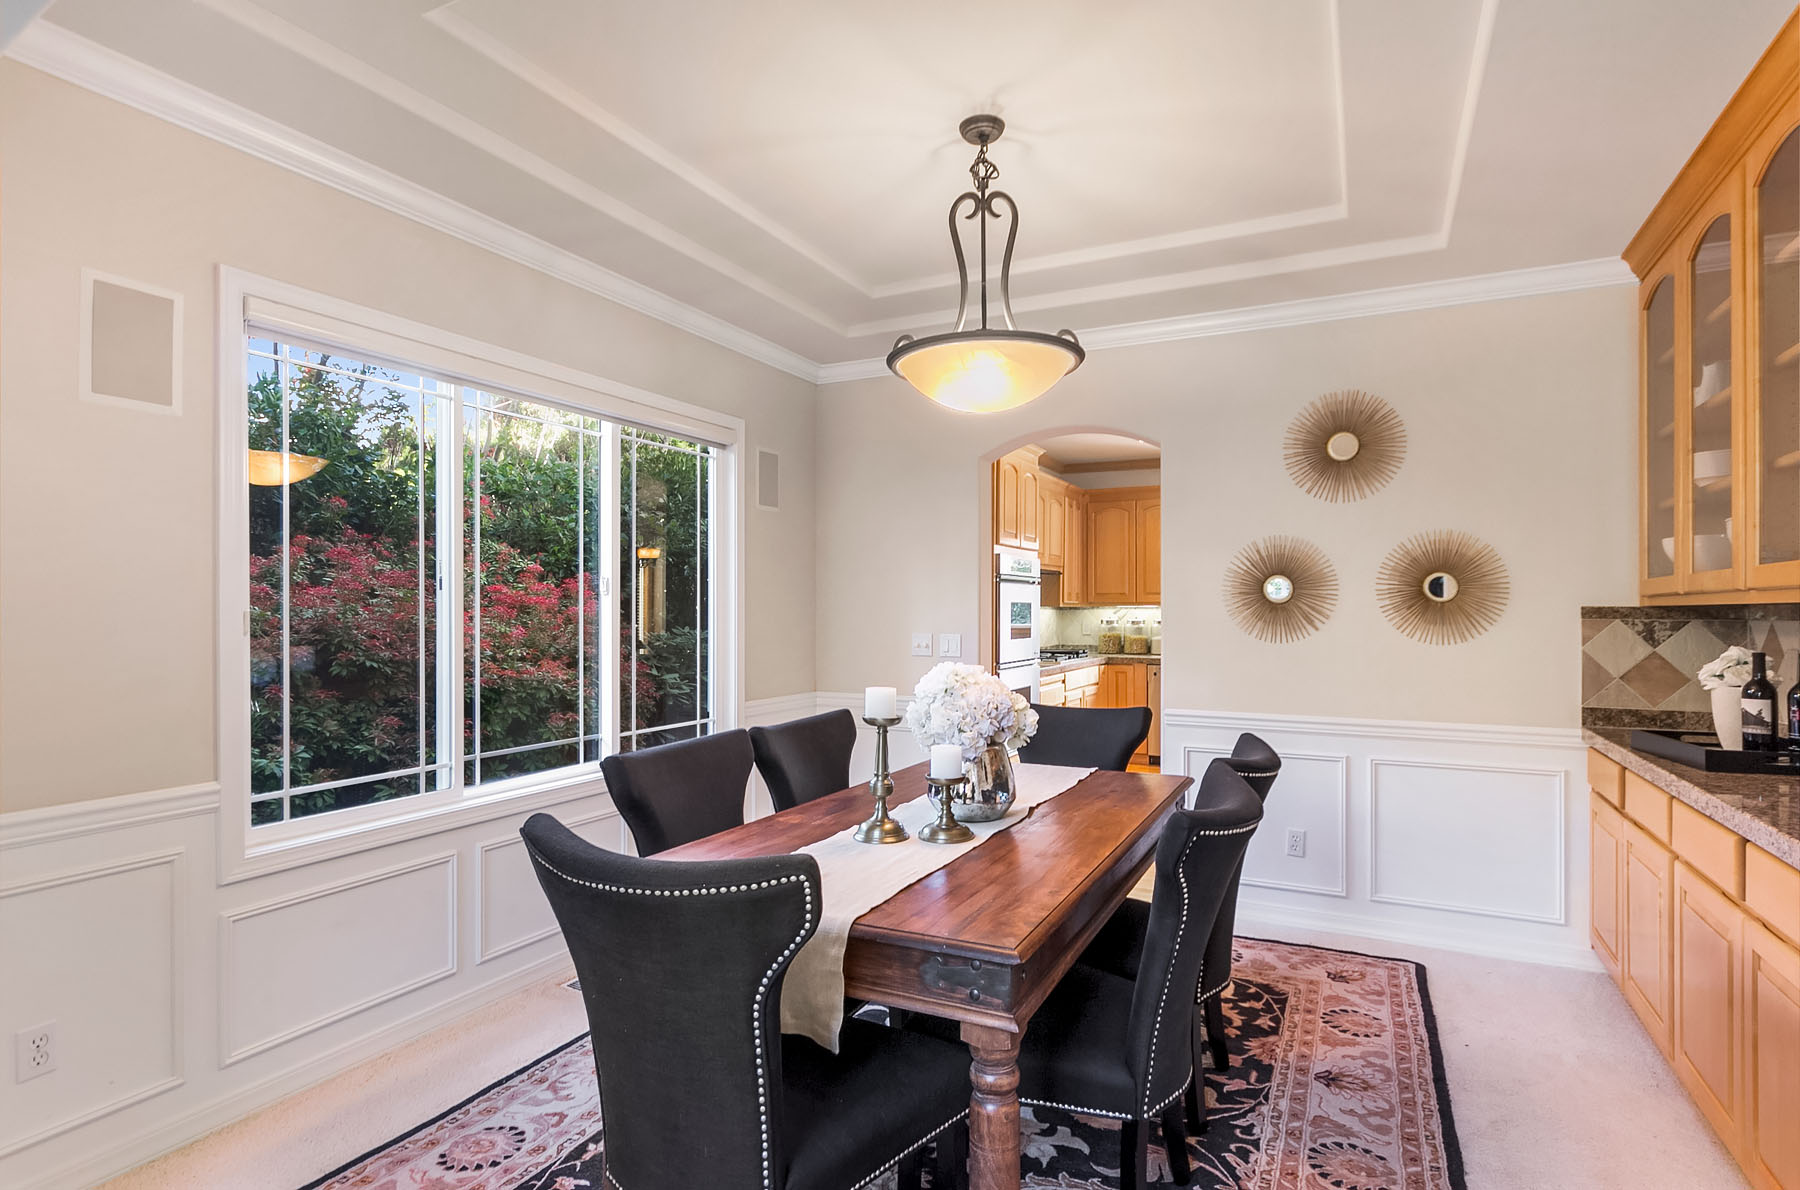 Additional photo for property listing at Brookside Traditional 1012 148th Ave NE Bellevue, Washington 98007 United States